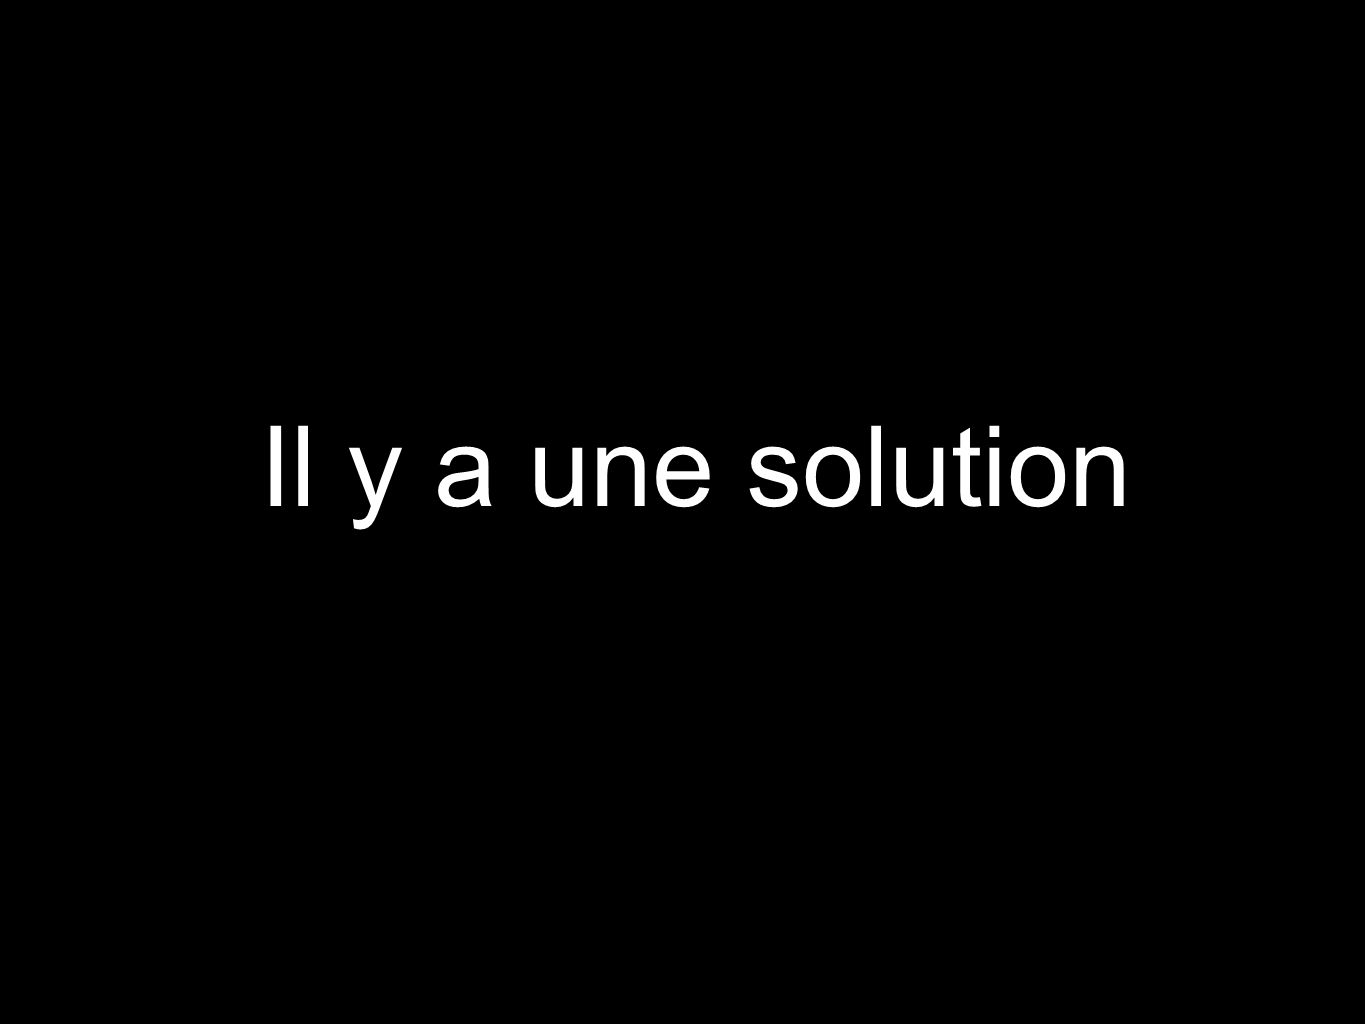 Il y a une solution